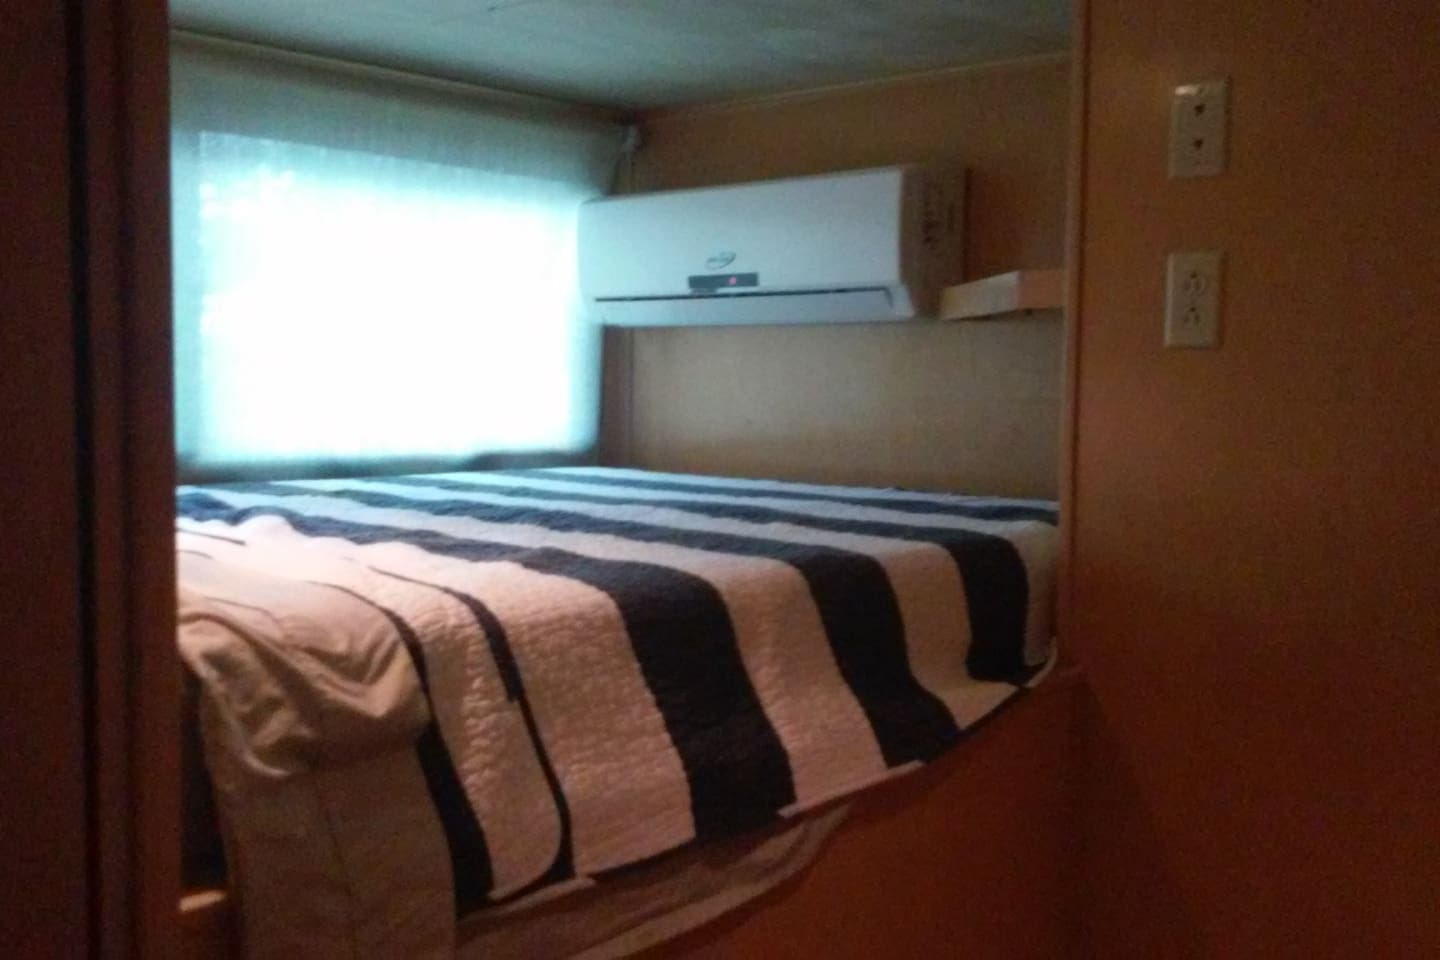 Double bed in the up berth